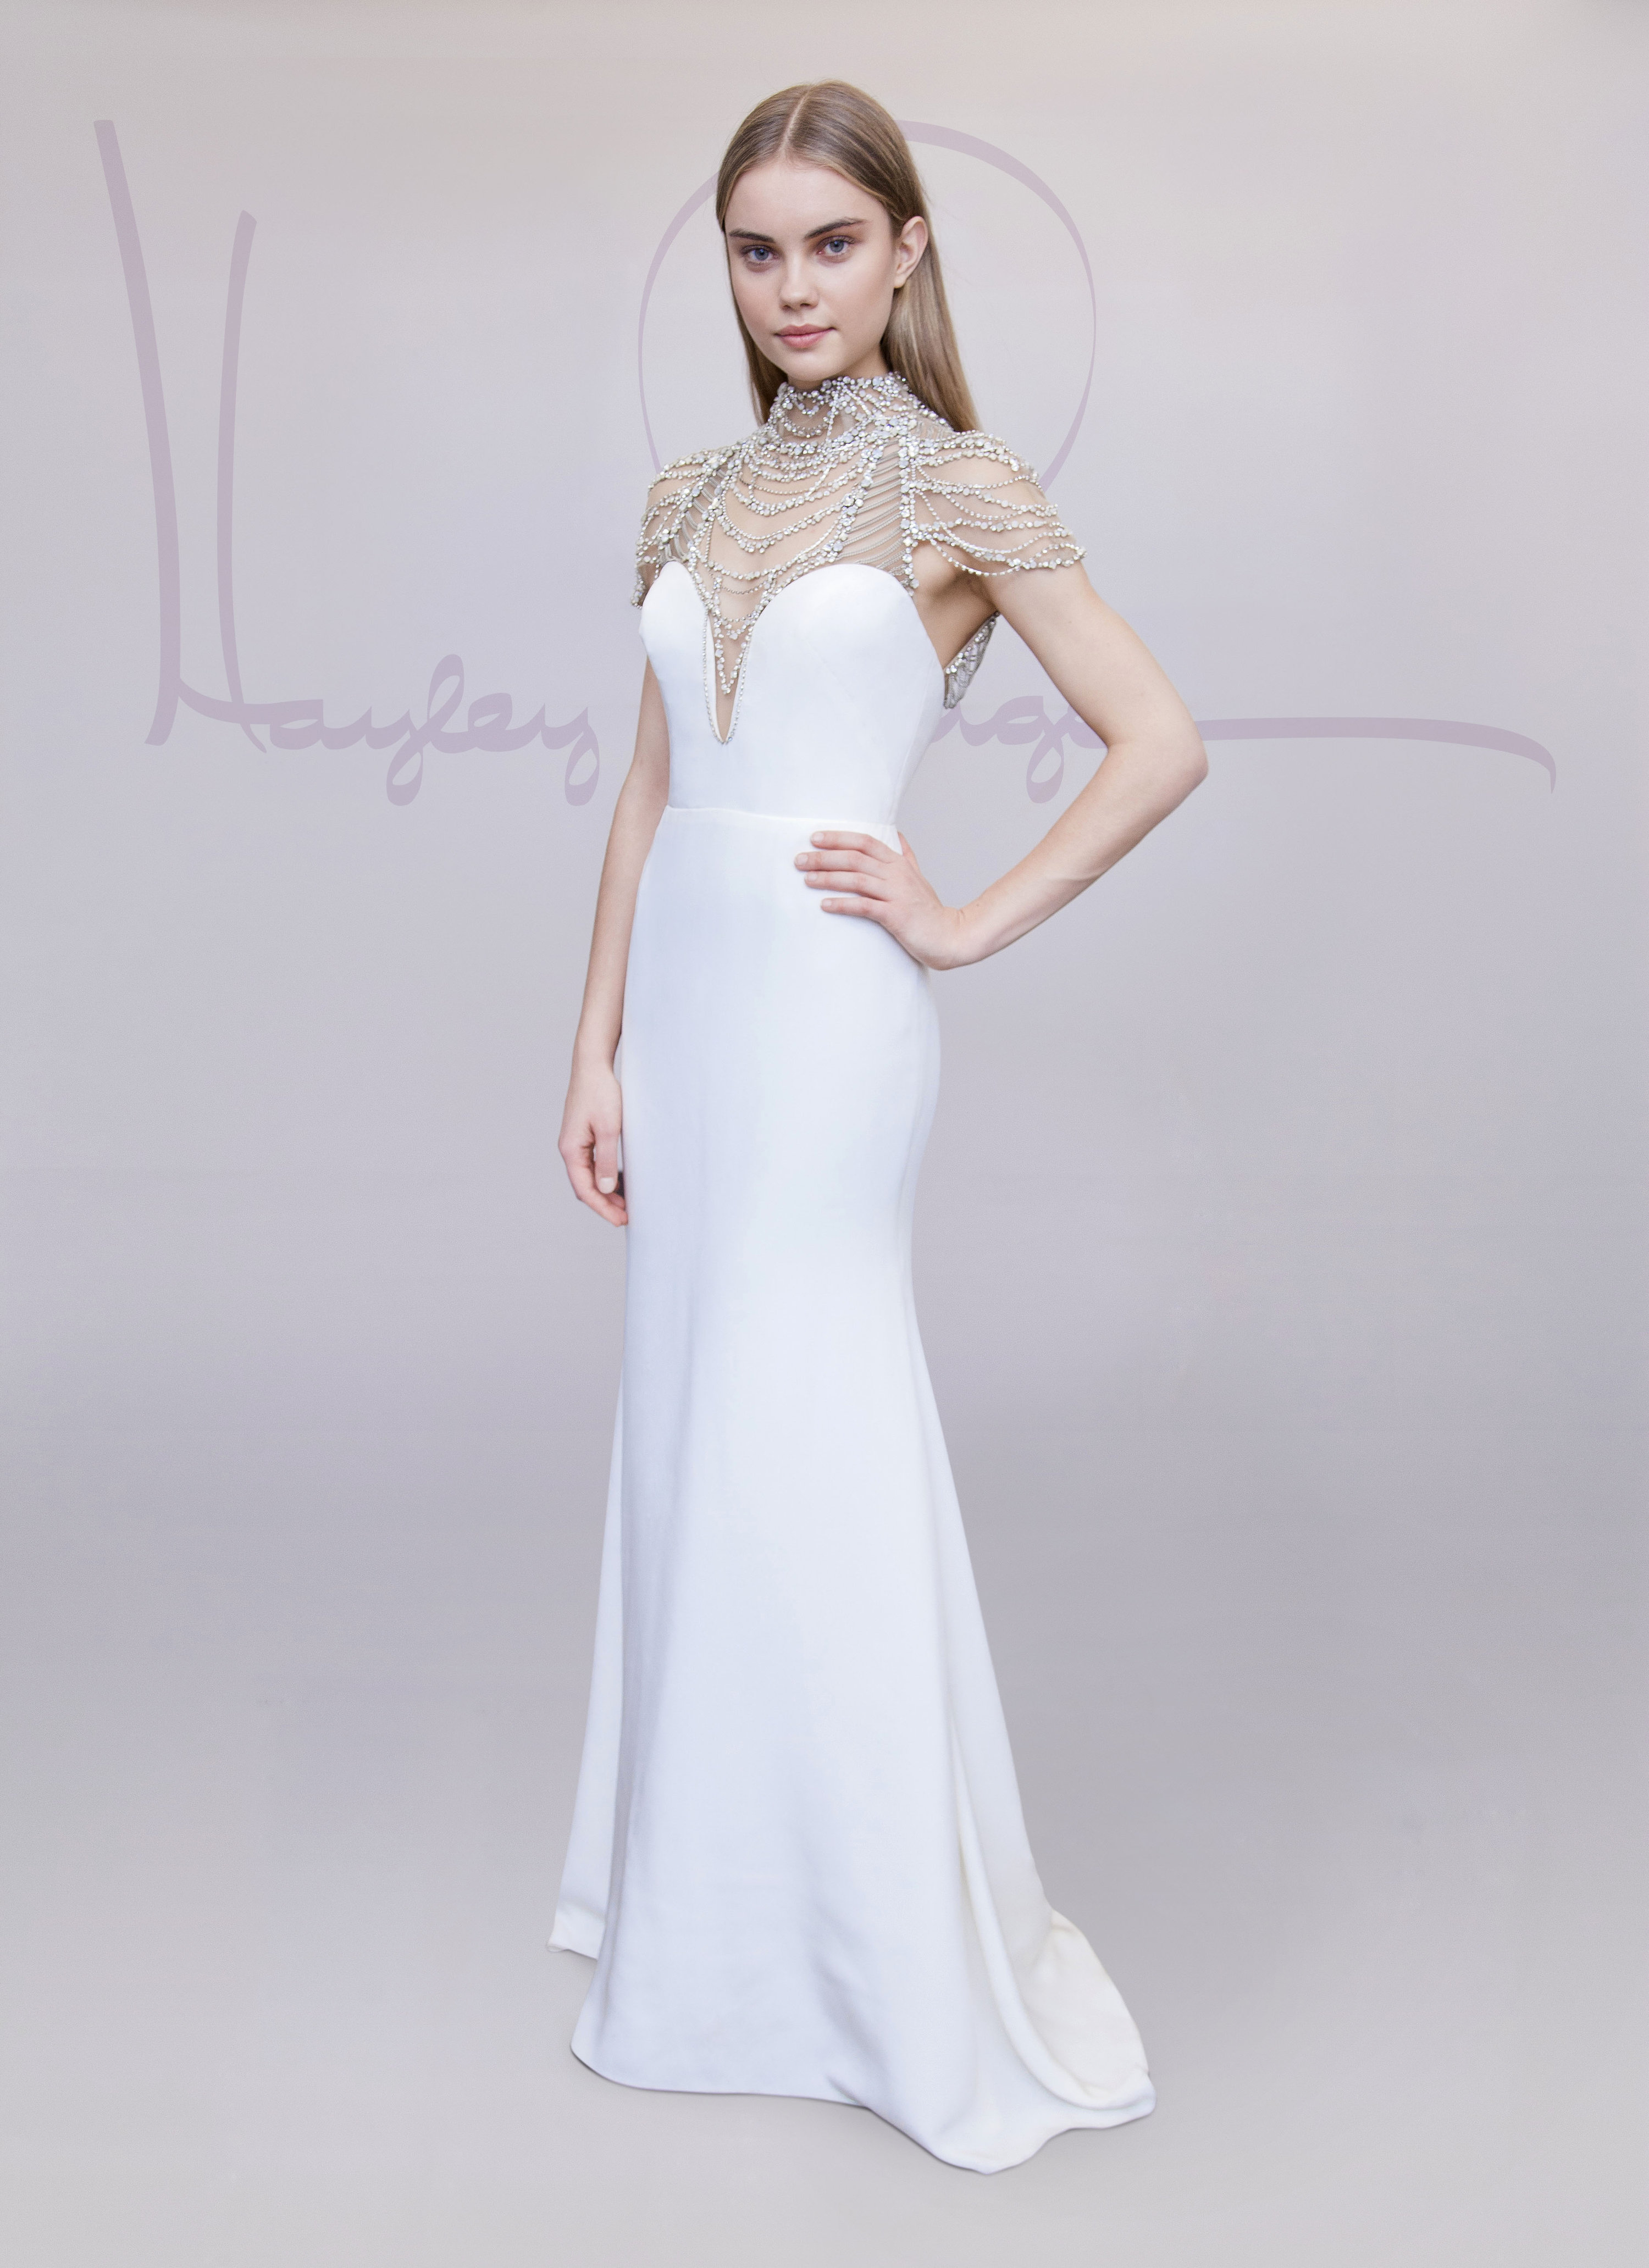 Bridal gowns and wedding dresses by jlm couture style freddie freddie front jlm pinterest icon ombrellifo Images